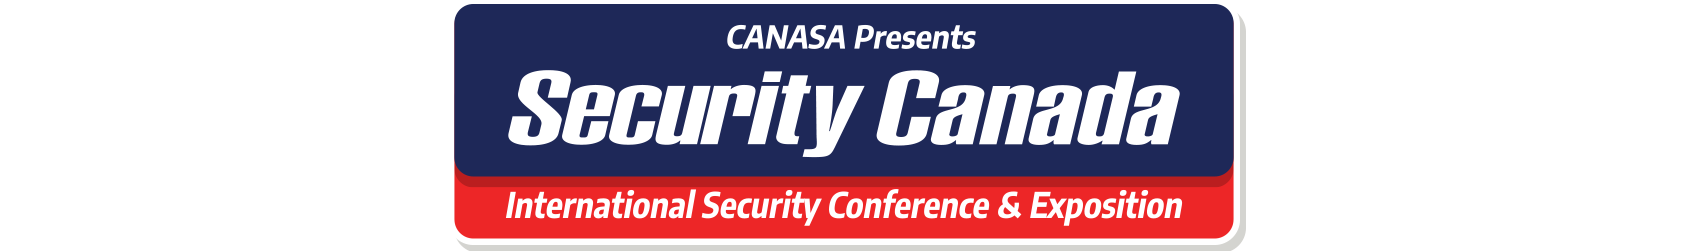 Canadian Security logo